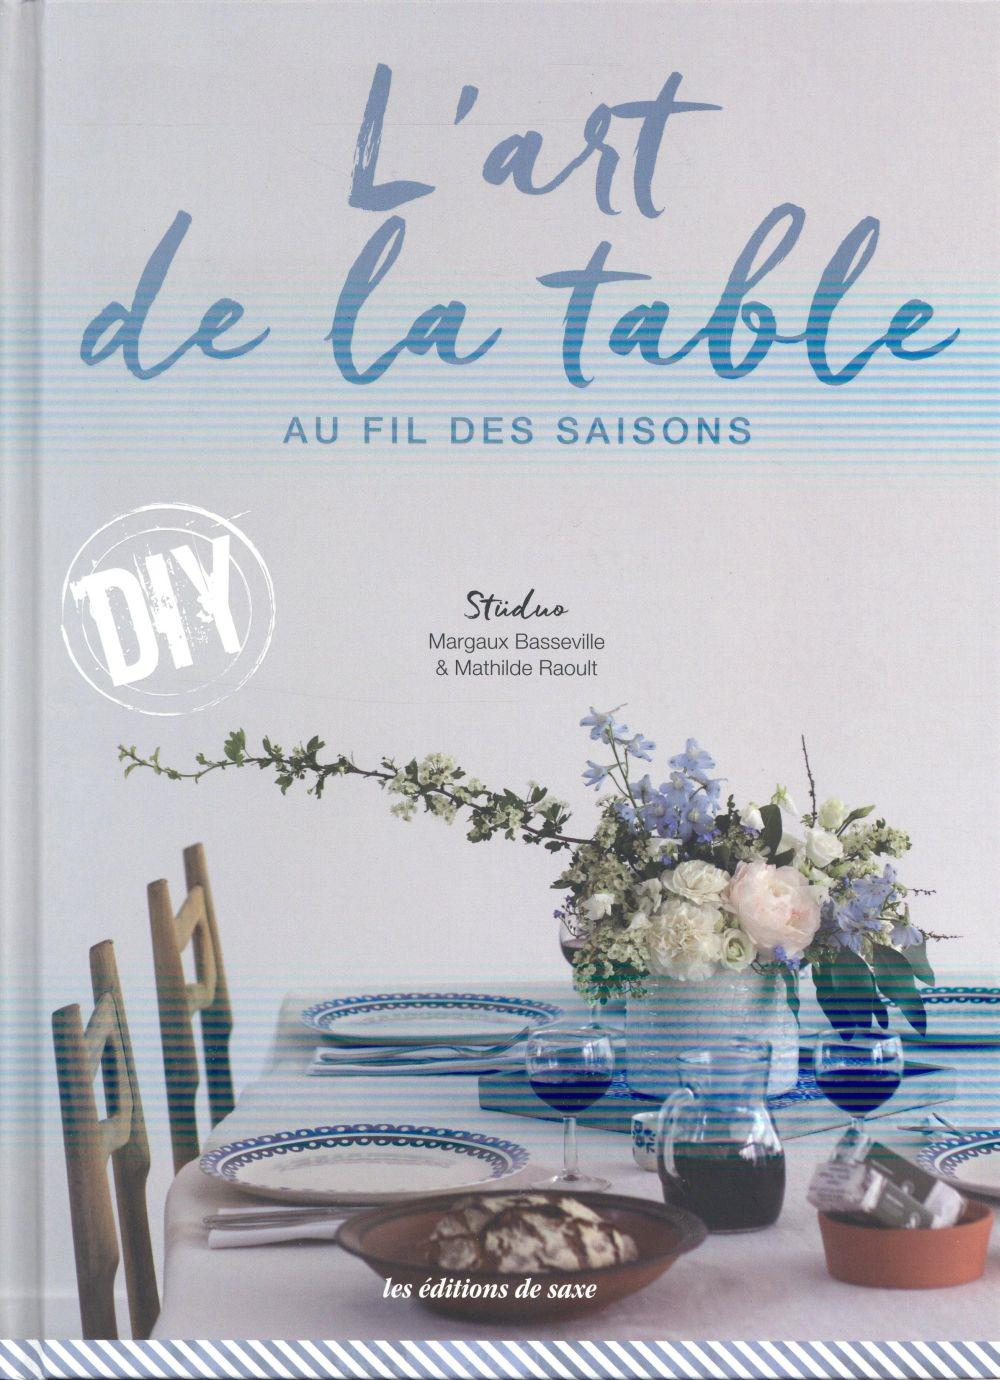 L'art de la table au fil des saisons  - Mathilde Raoult  - Margaux Basseville